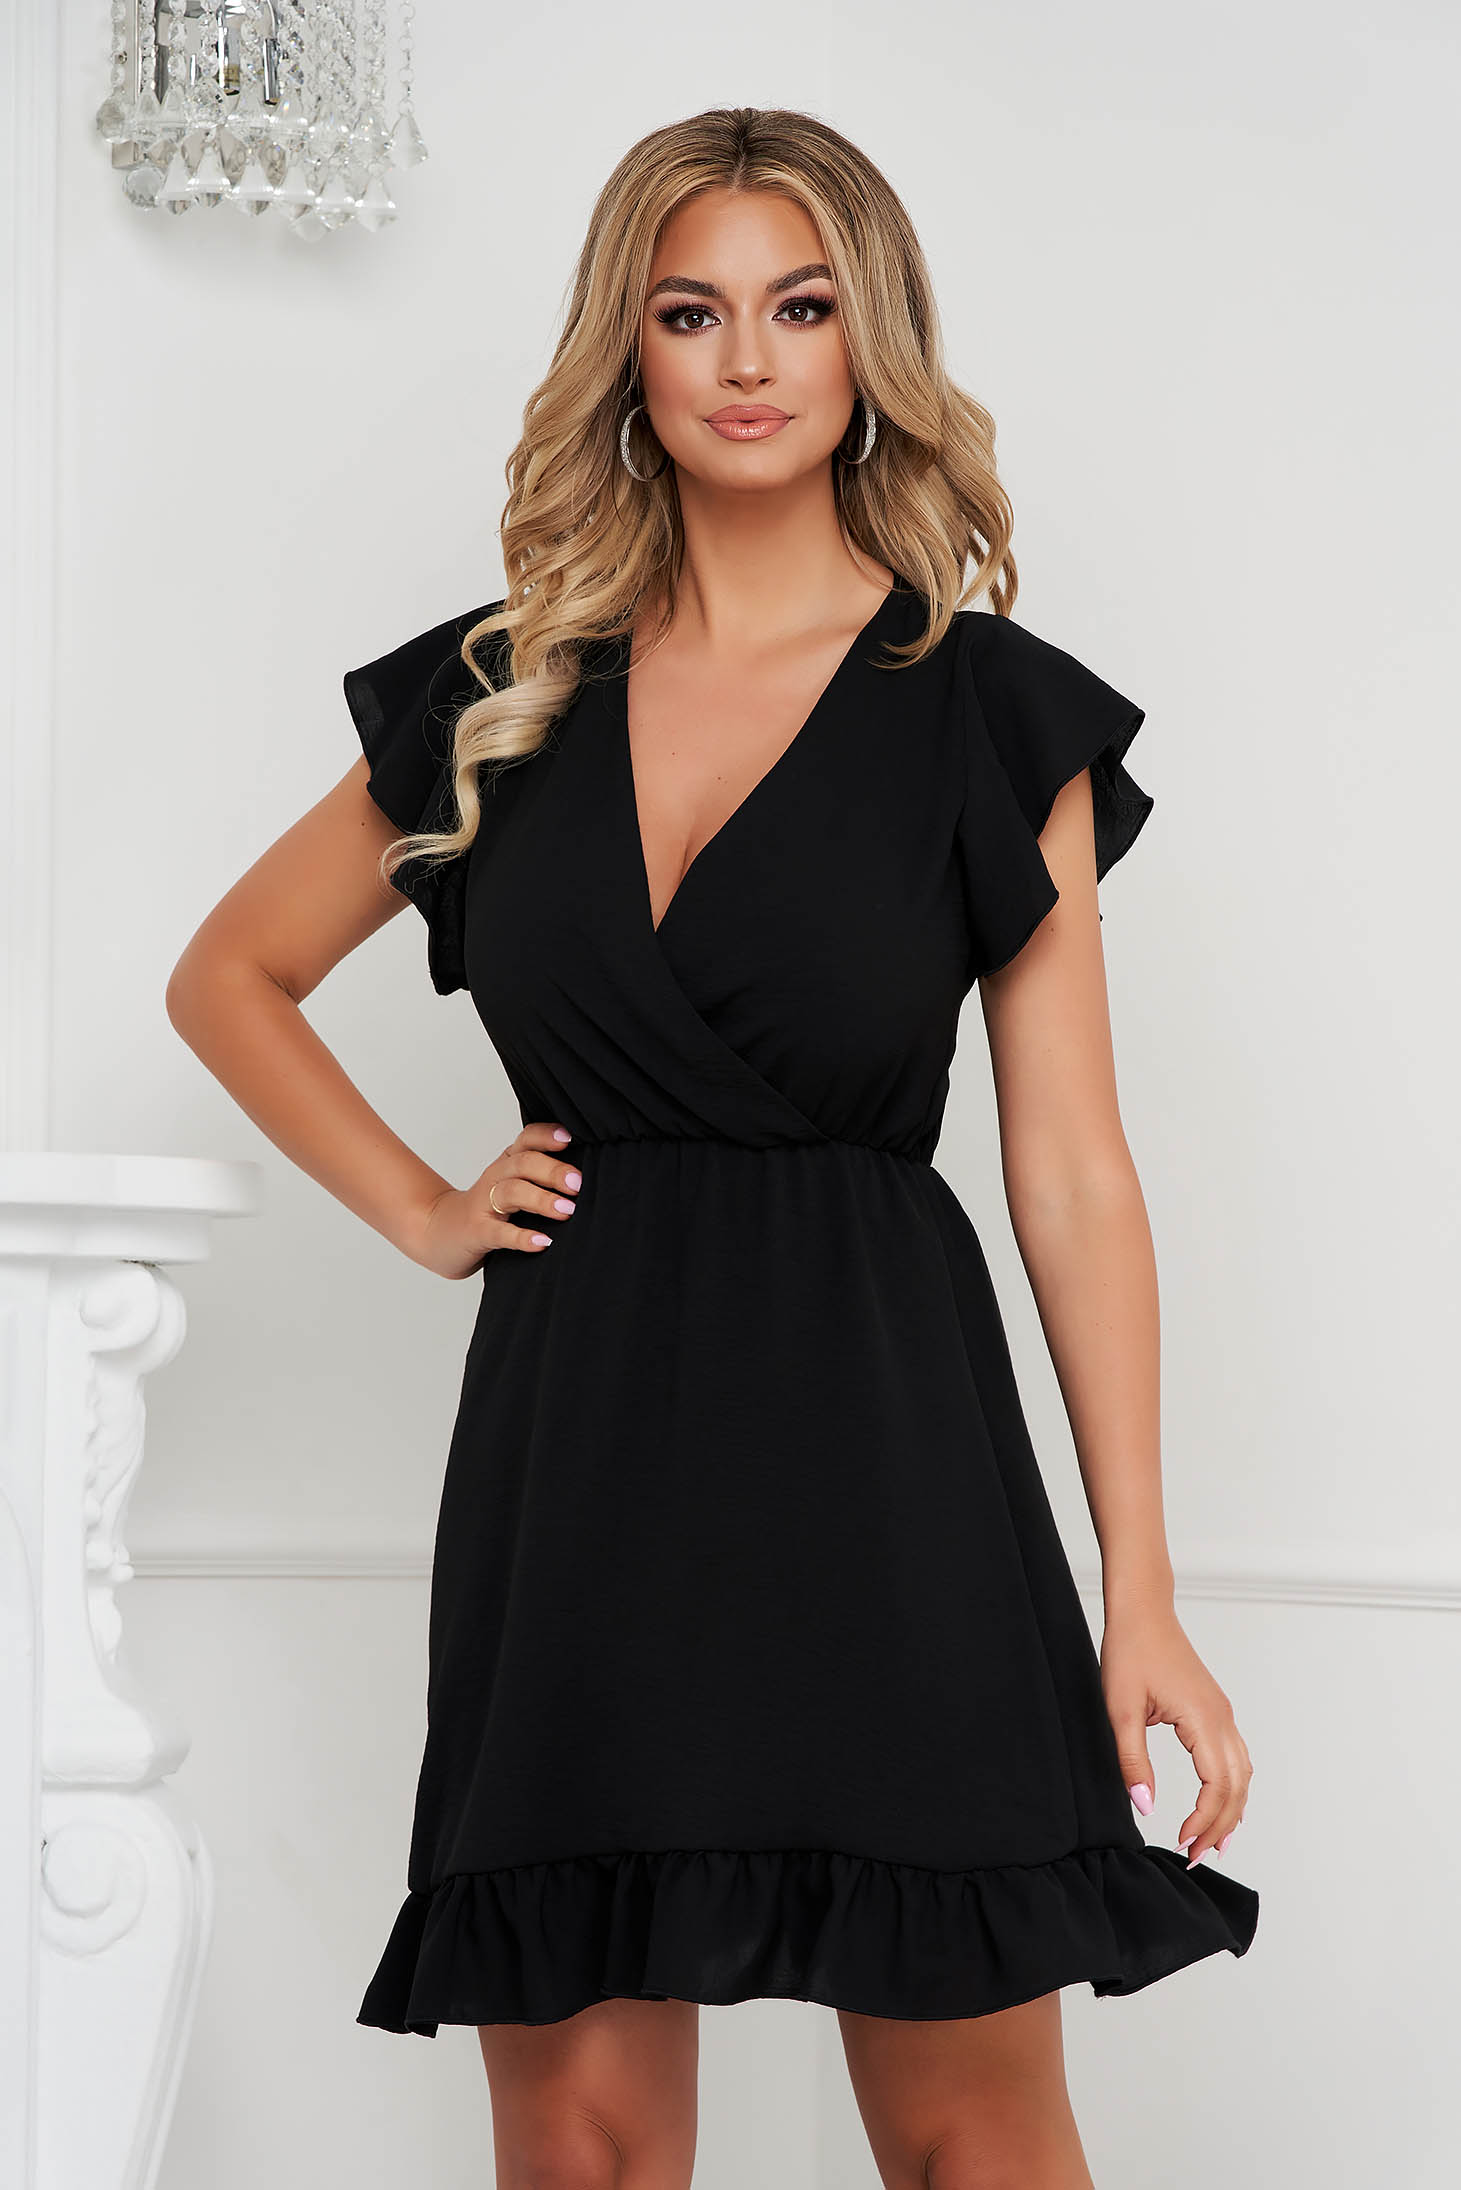 Black dress short cut cloche with elastic waist wrinkled texture with ruffle details